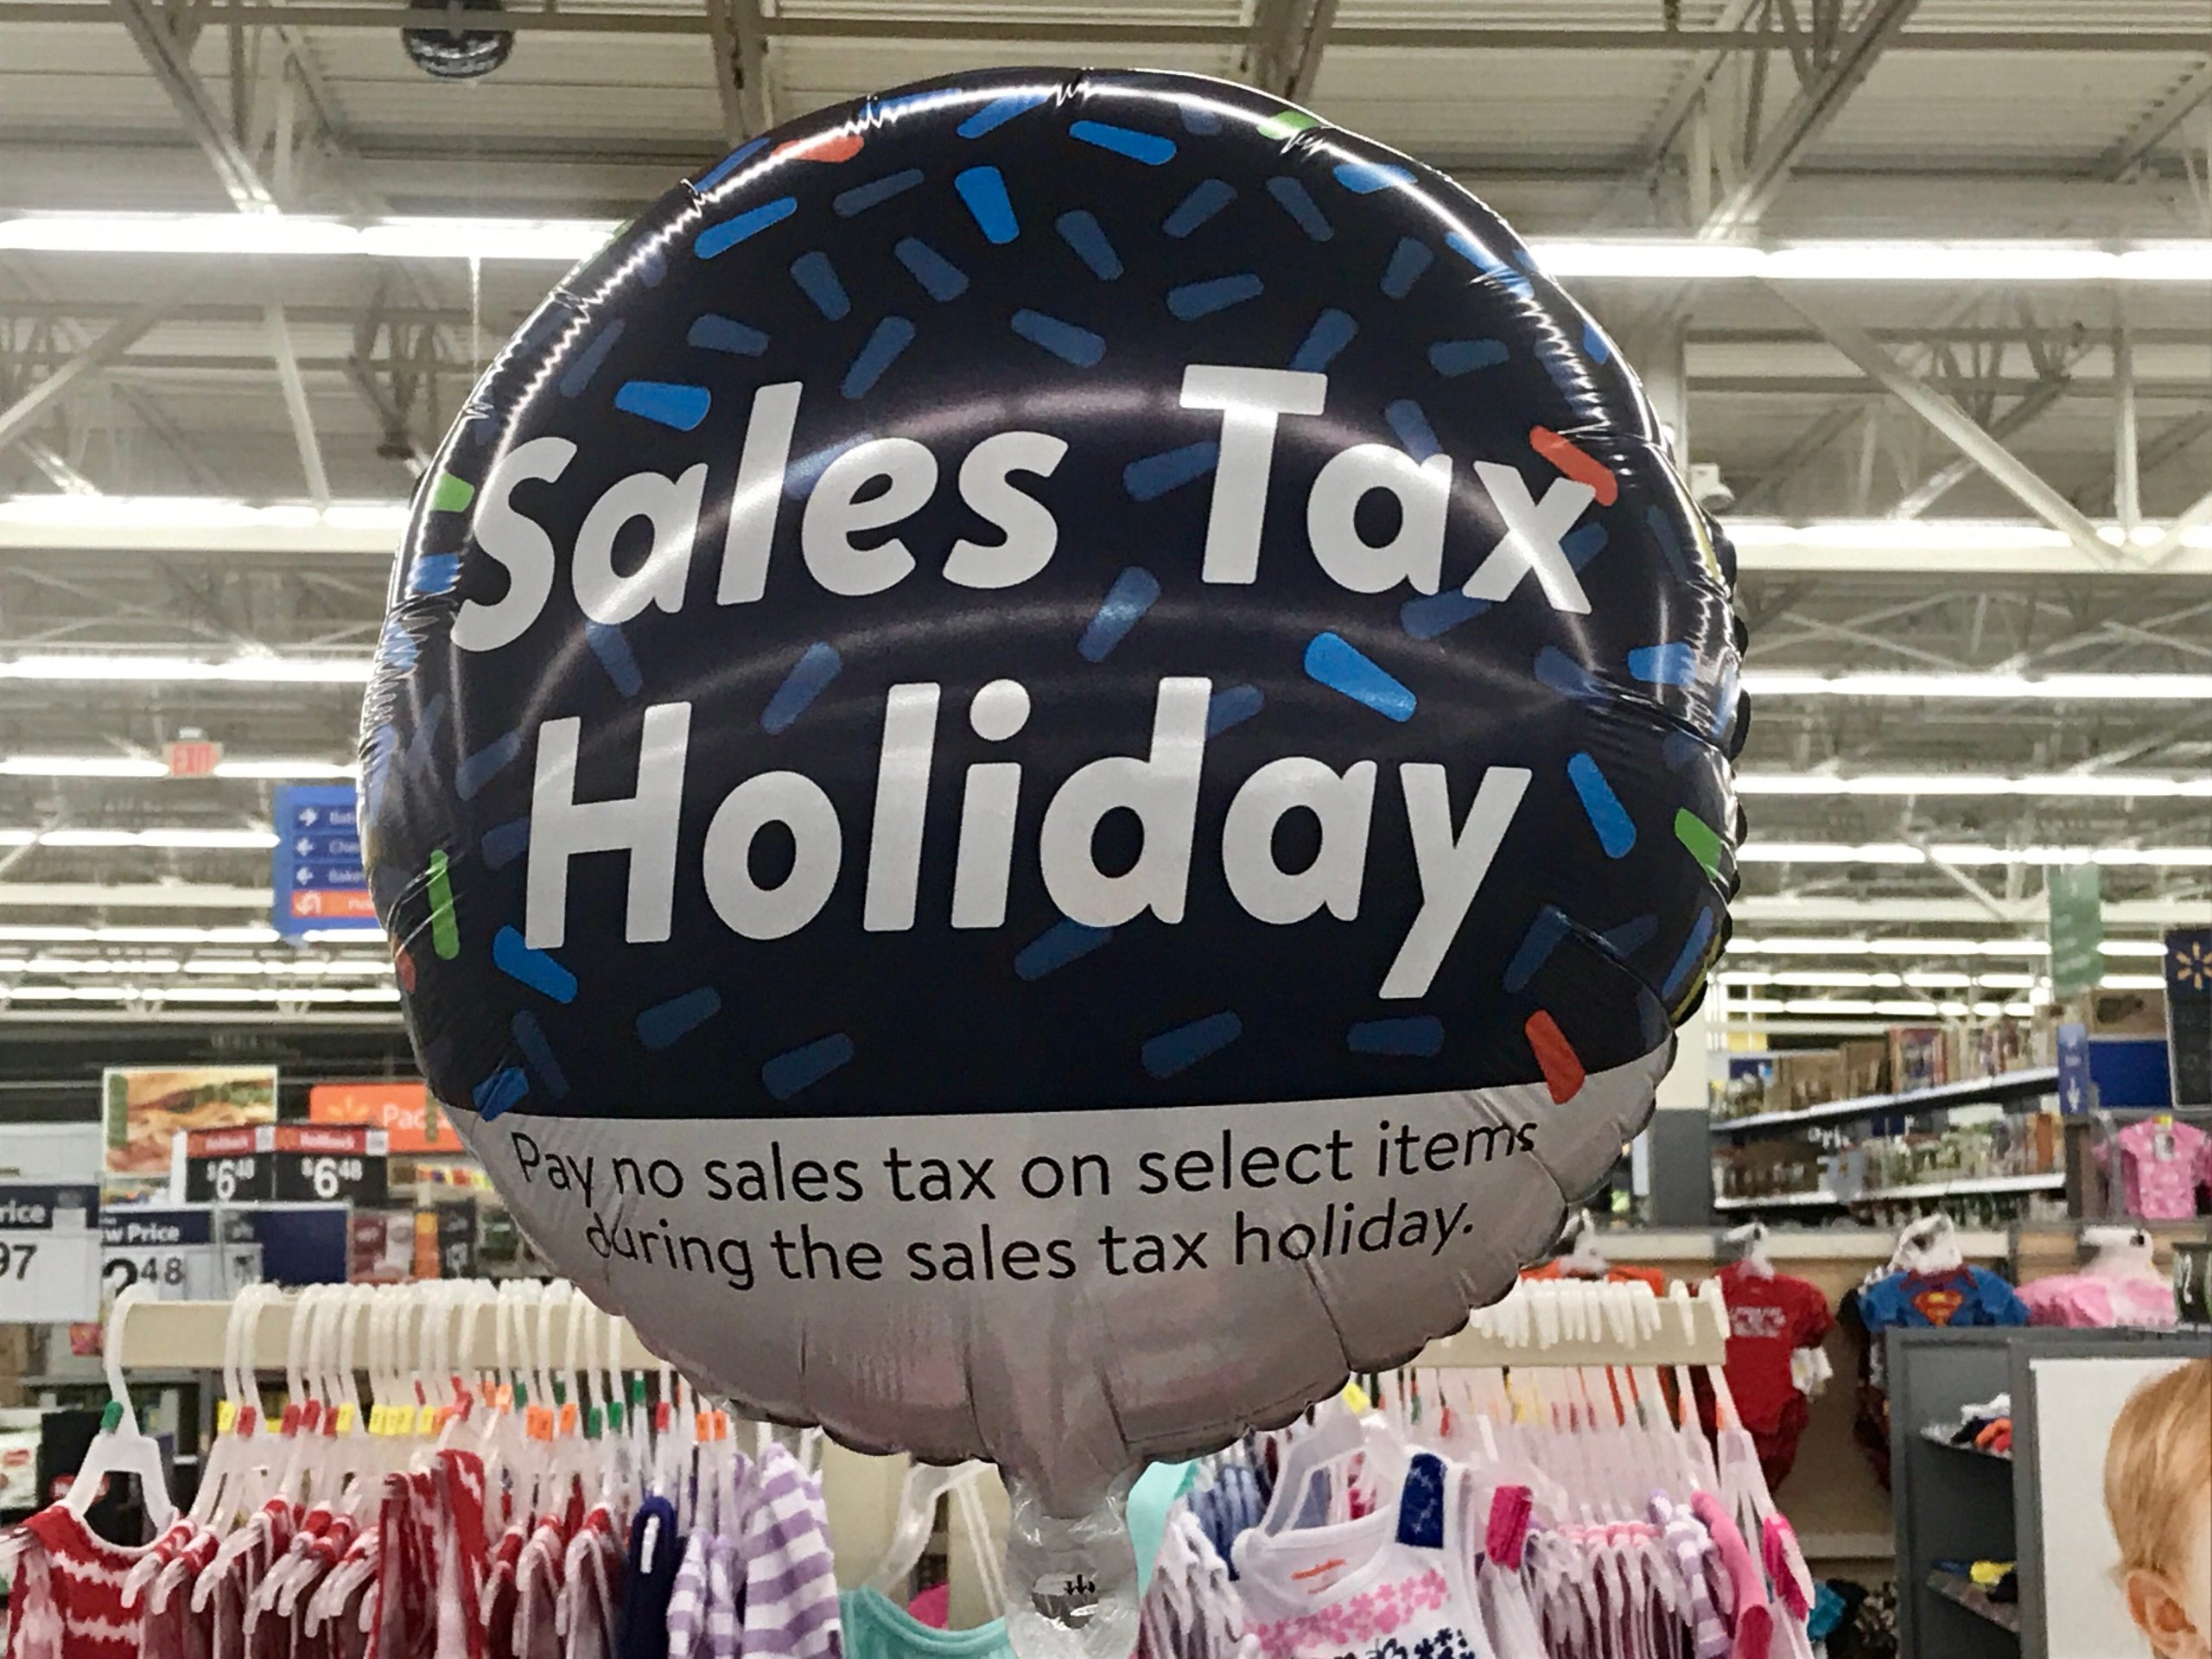 Sales tax holidays 2021: Shop tax-free for clothes, school supplies in 11 states this weekend